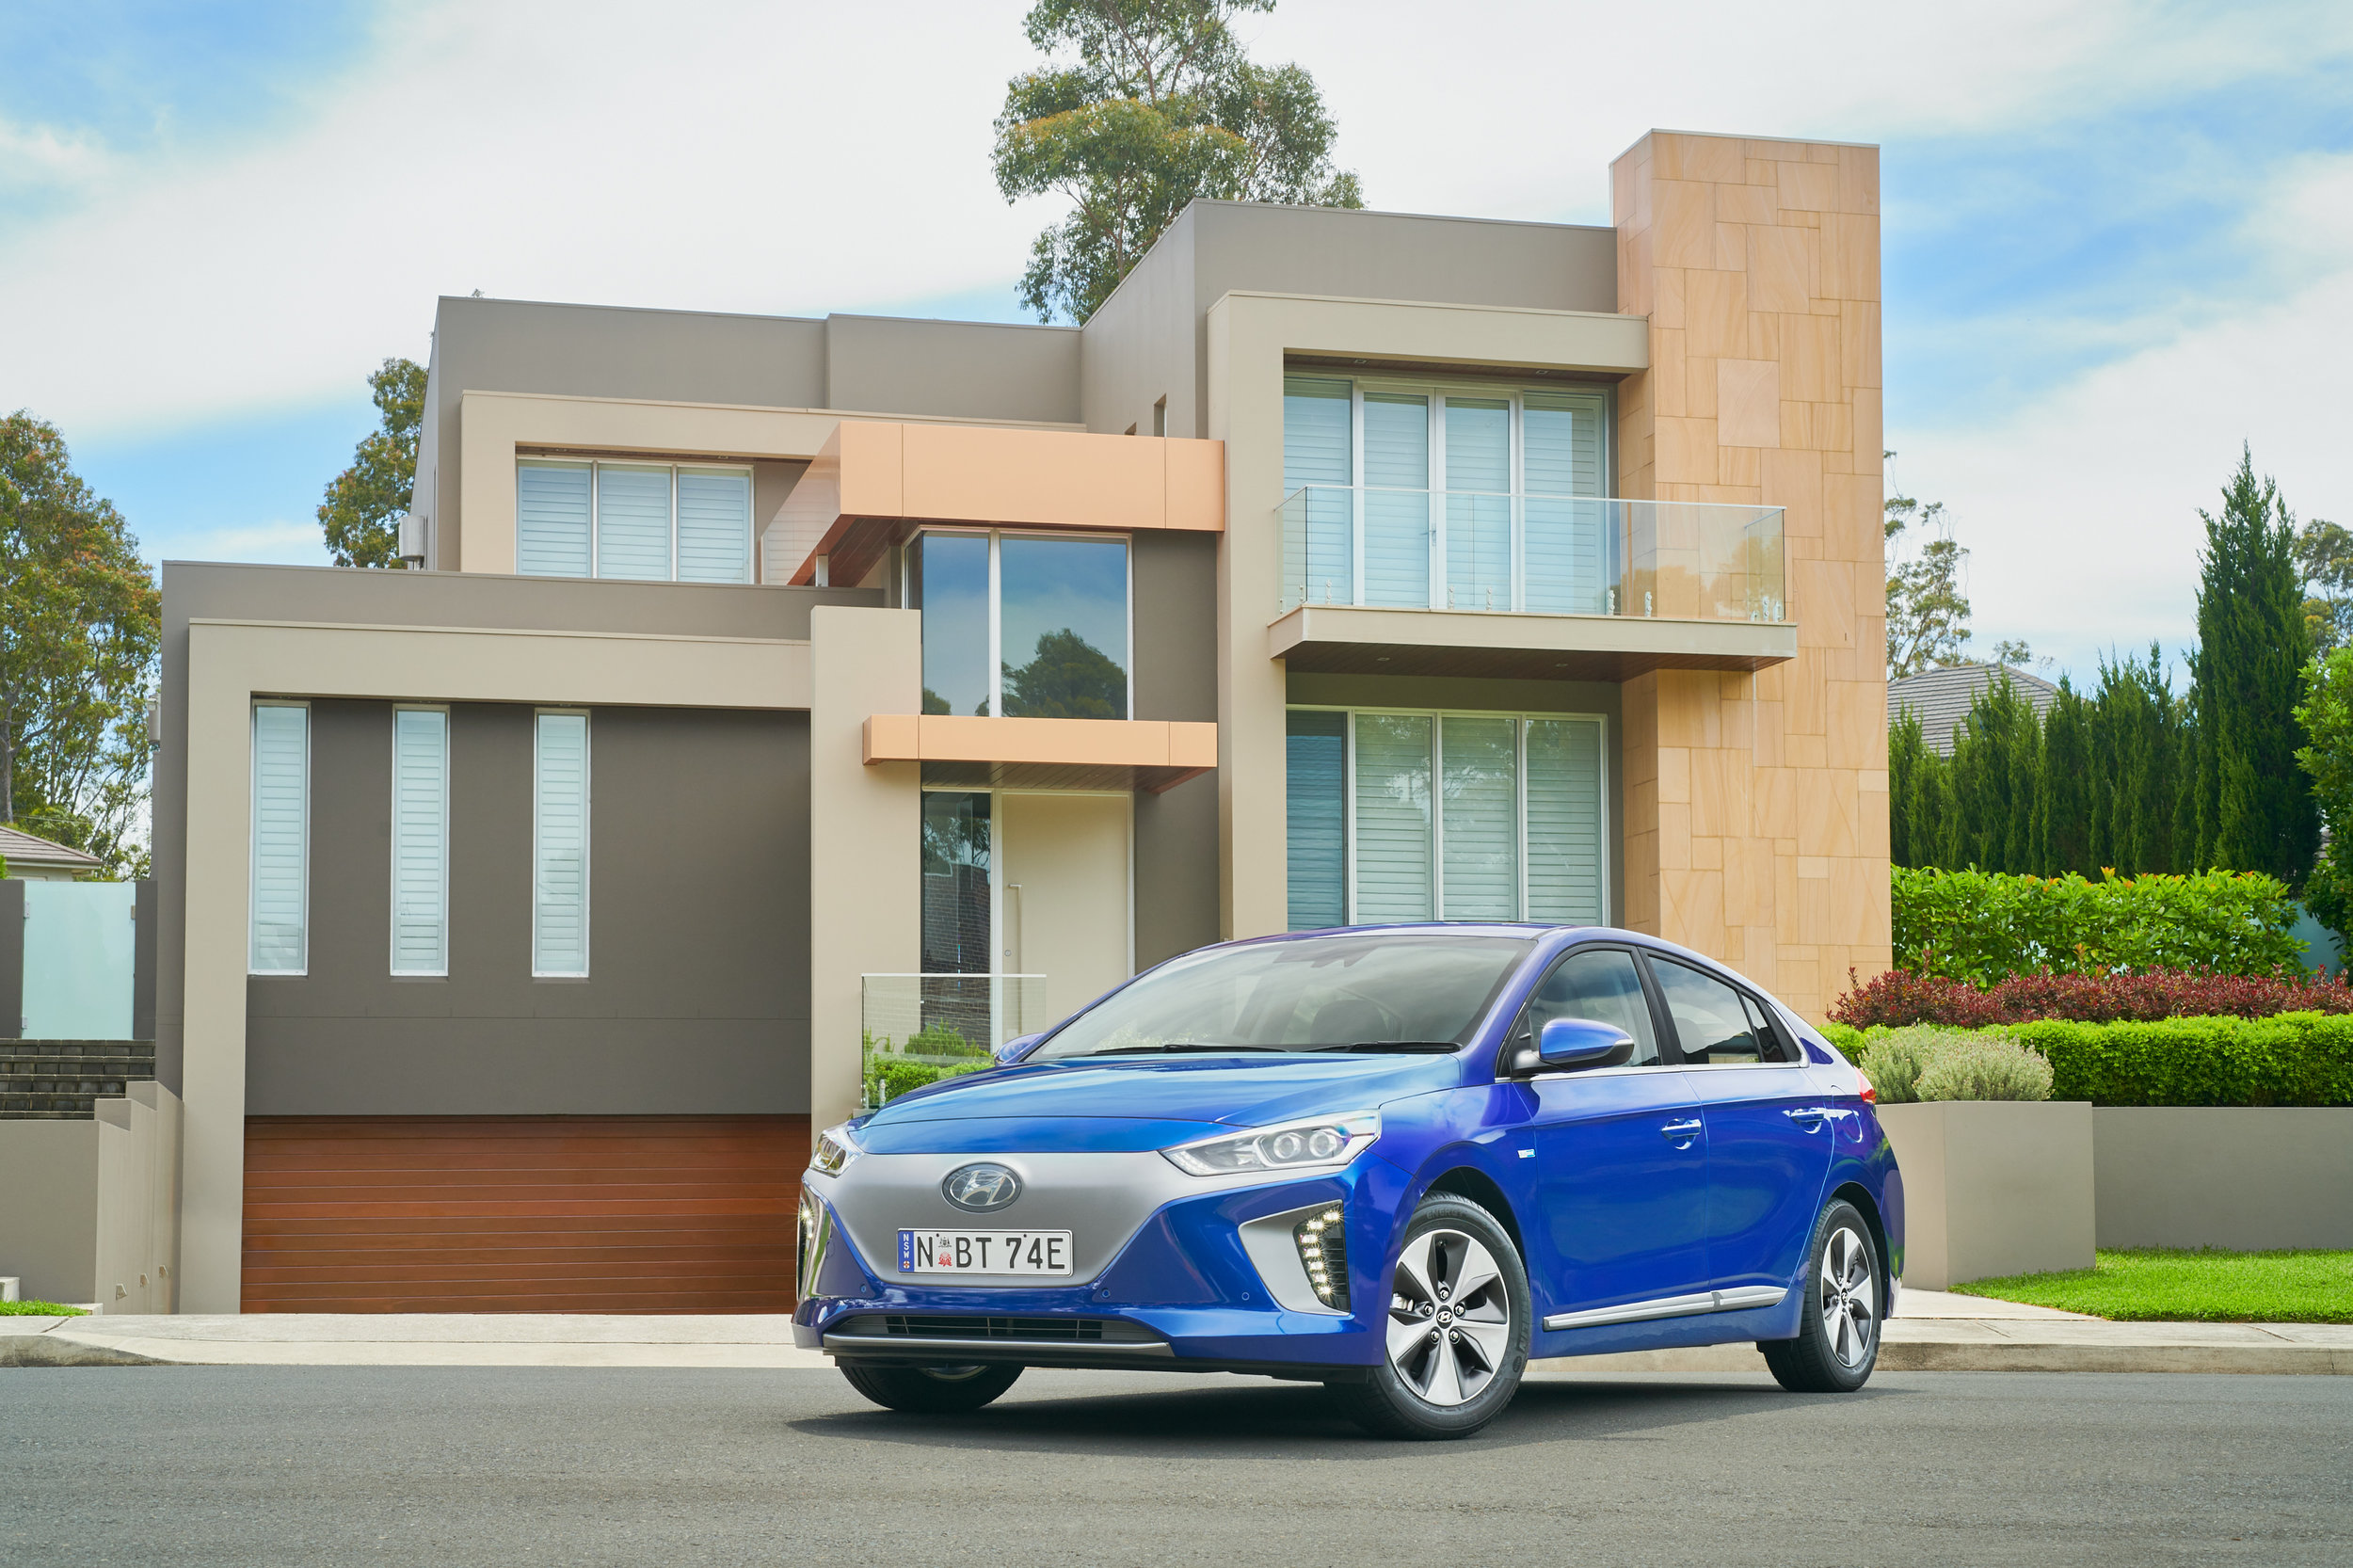 2019 IONIQ Electric Premium - 01.jpg